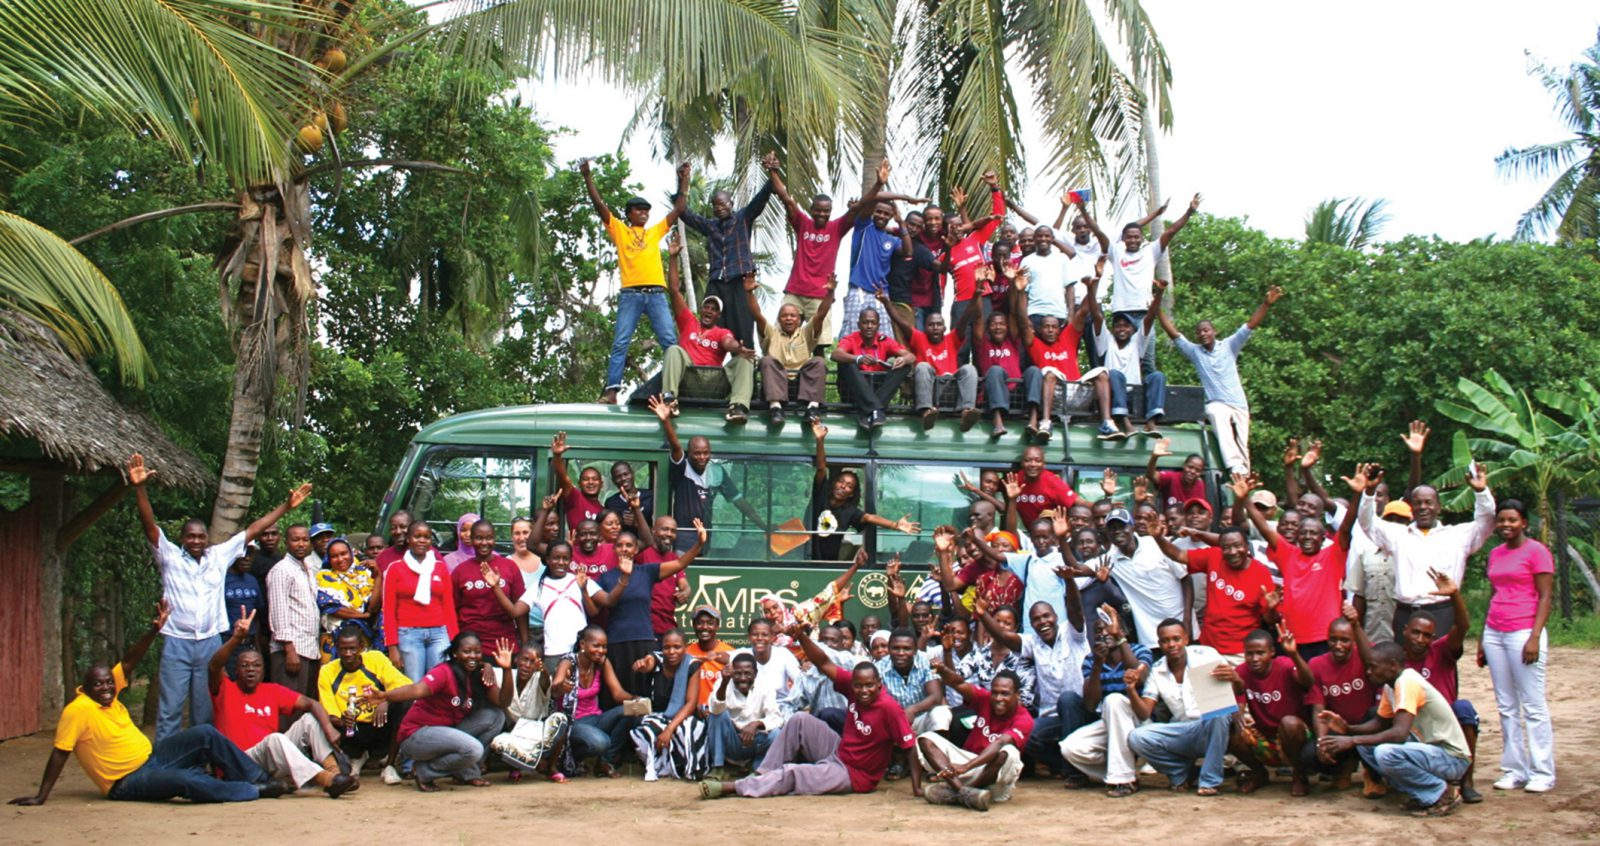 camps_international_staff_in_africa_working_on_school_expeditions